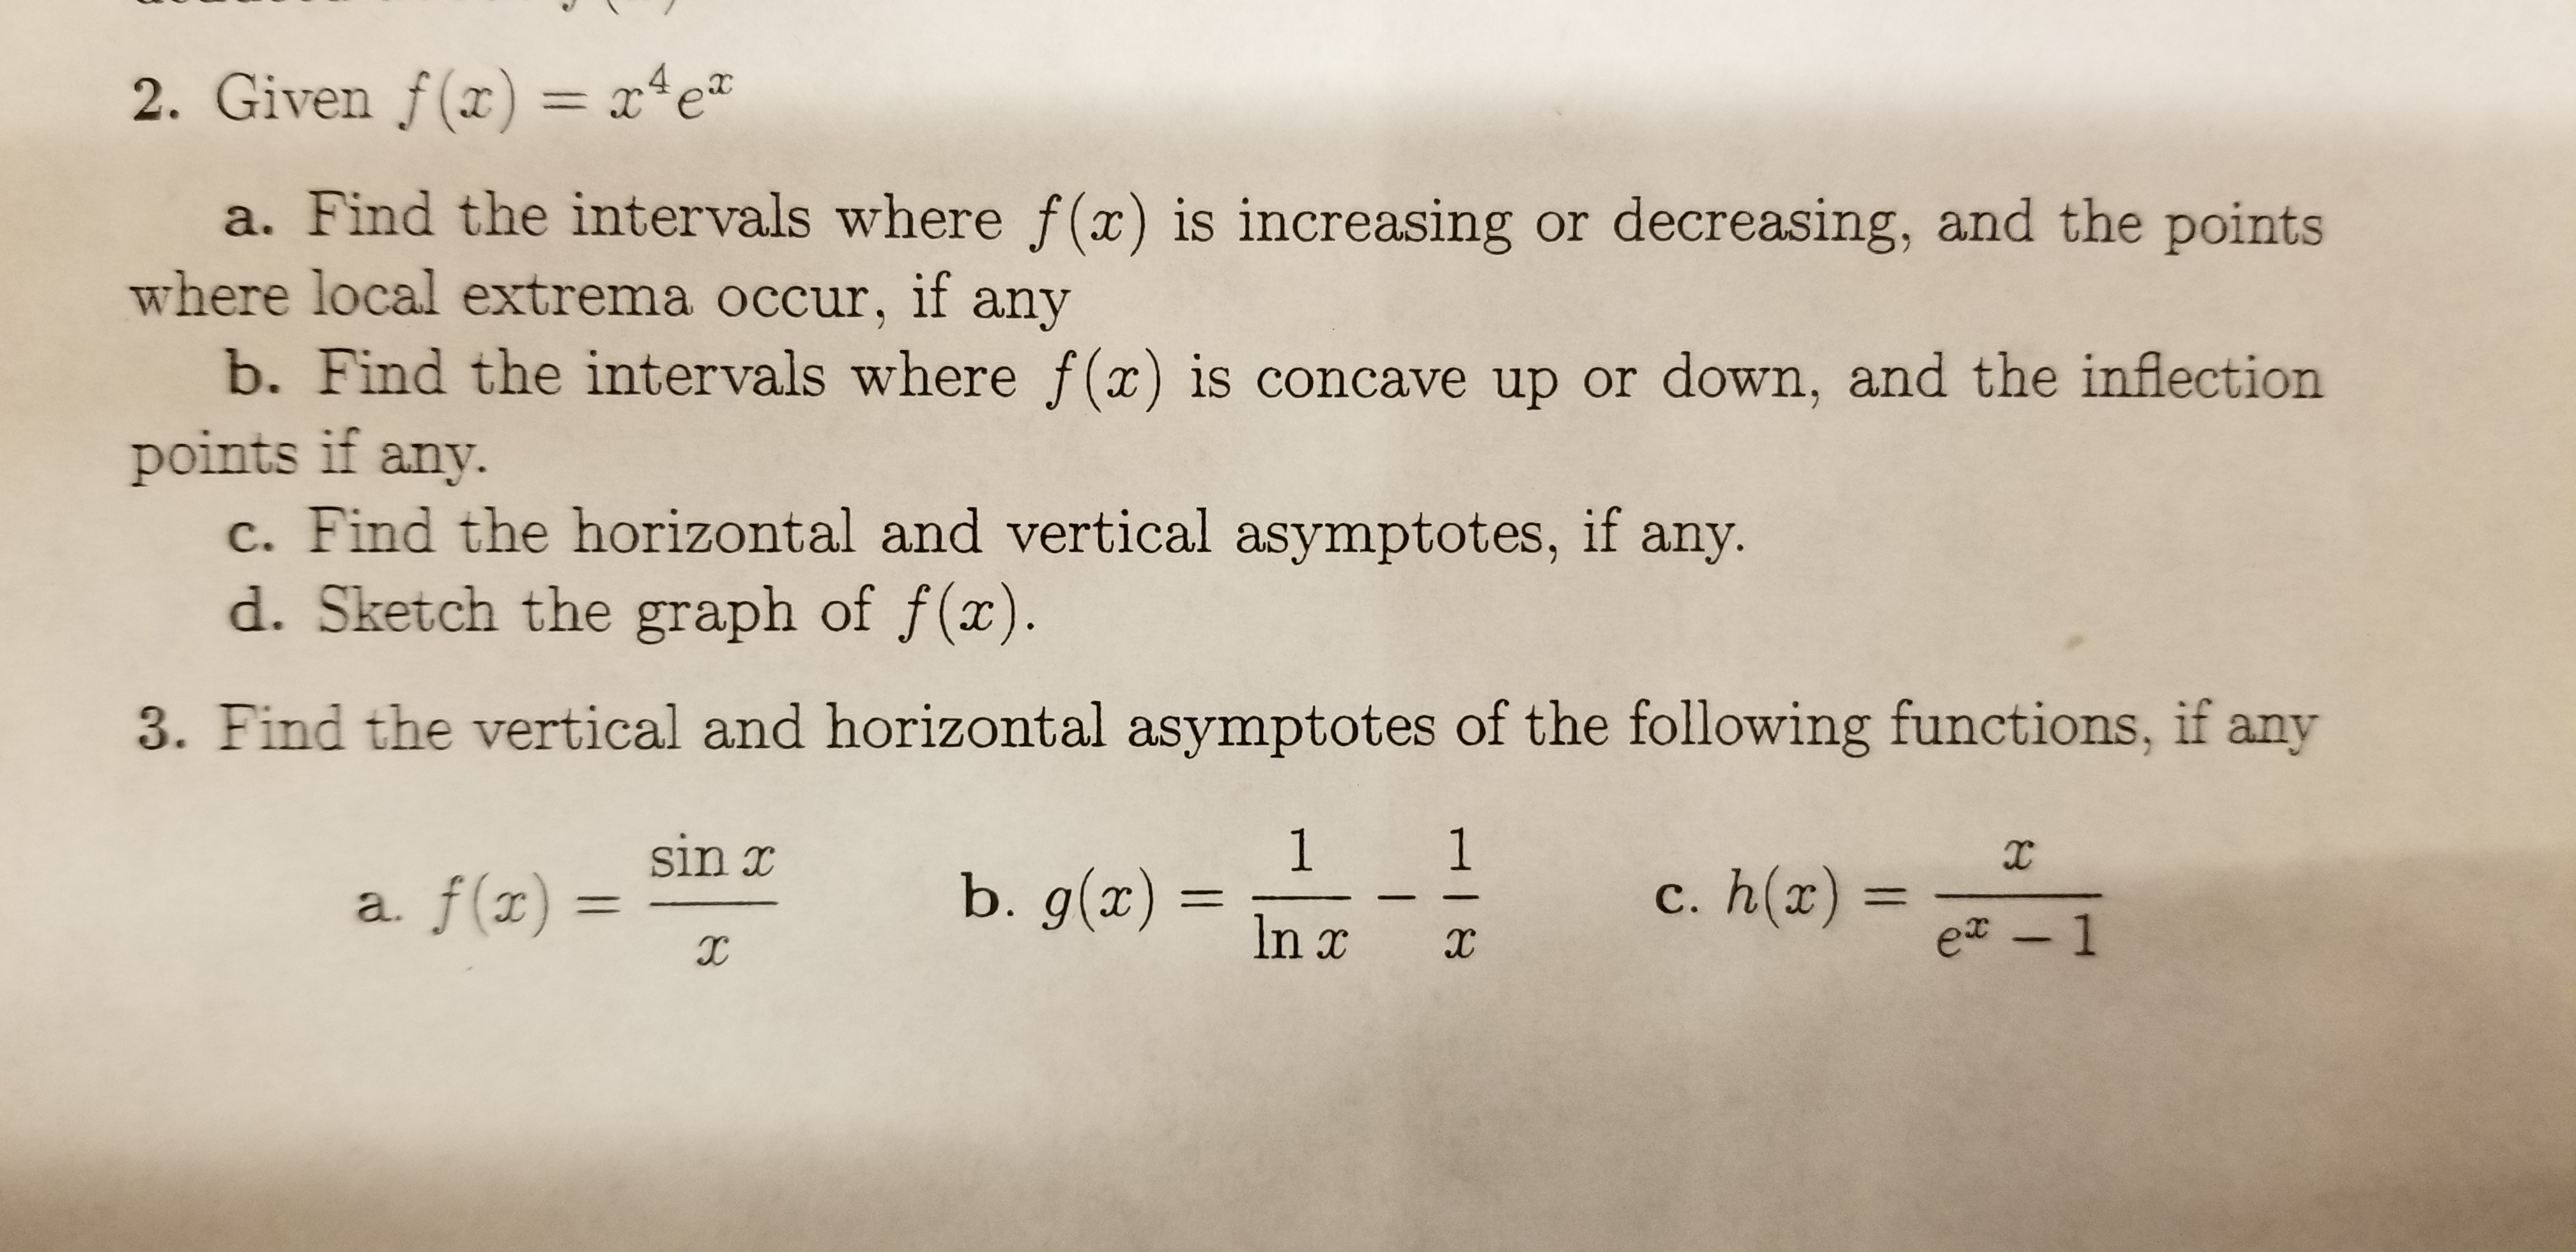 2. Given f(x) = x4e a. Find the intervals where f(x) is increasing or decreasing, and the points where local extrema occur, if any b. Find the intervals where f(x) is concave up or down, and the inflection points if any. c. Find the horizontal and vertical asymptotes, if d. Sketch the graph of f(x). any. 3. Find the vertical and horizontal asymptotes of the following functions, if any 1 b. g(x) 1 sin x X c. h(x) = a. f(x 11 e - 1 In x HI8